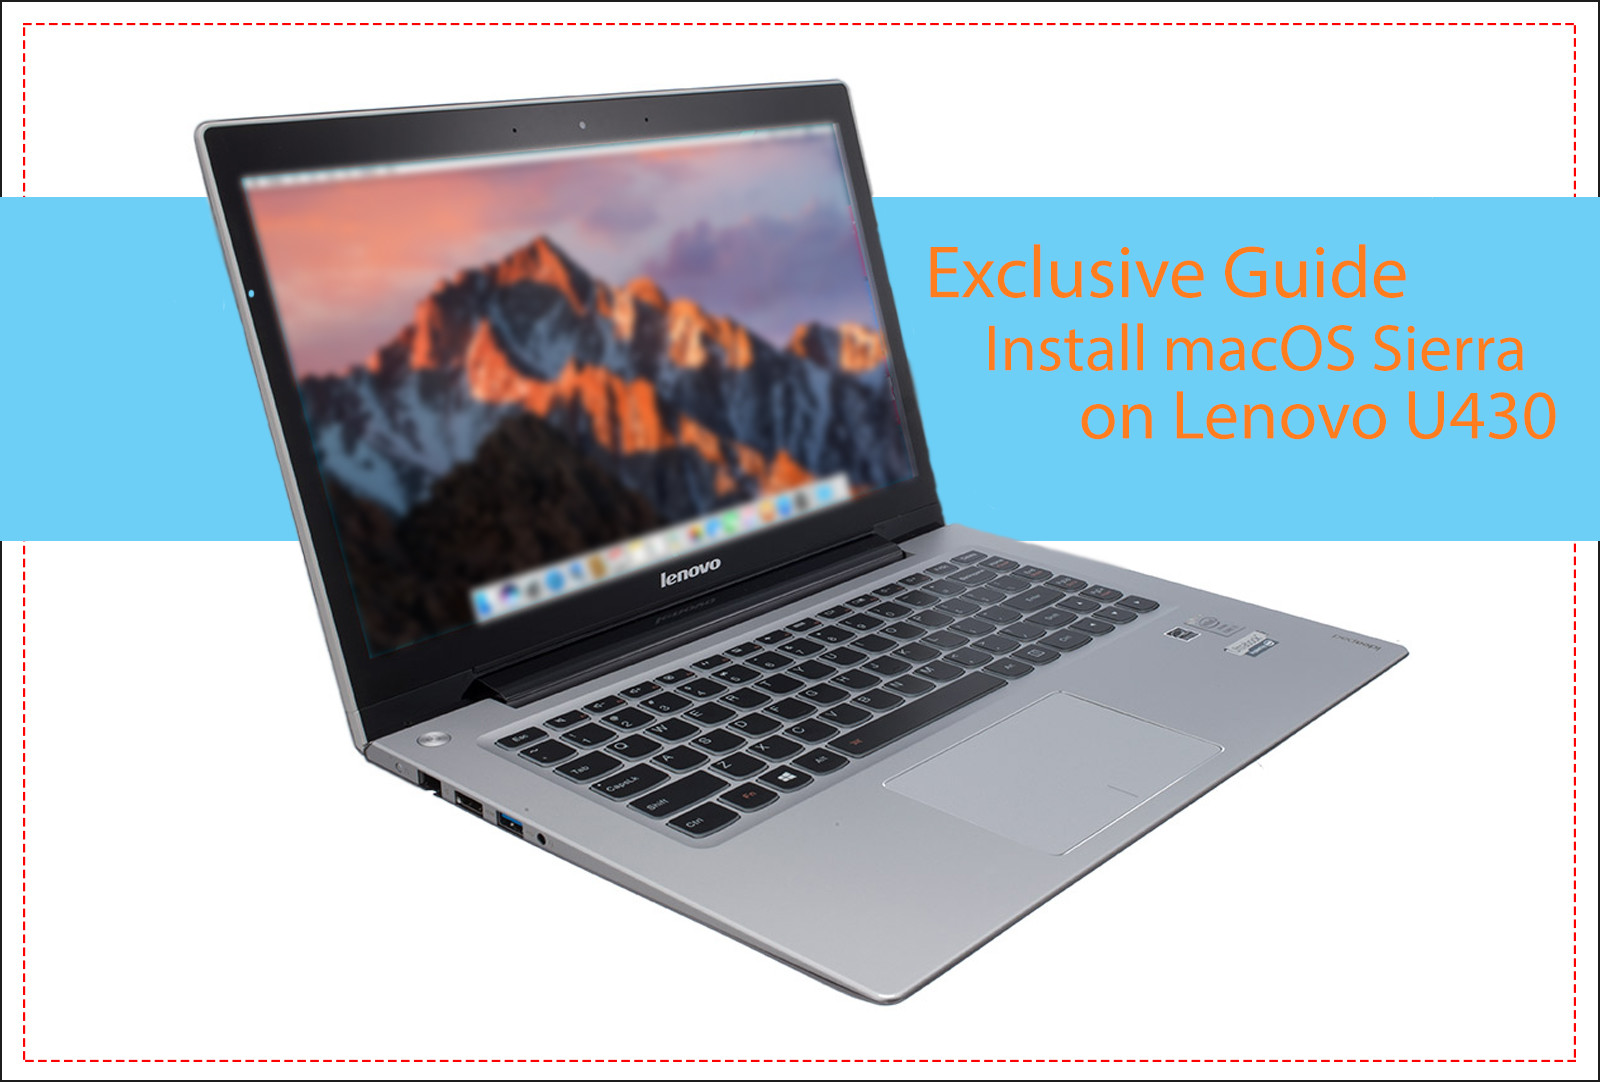 Exclusive Guide] Install macOS Sierra on Lenovo IdeaPad U430/u330/530